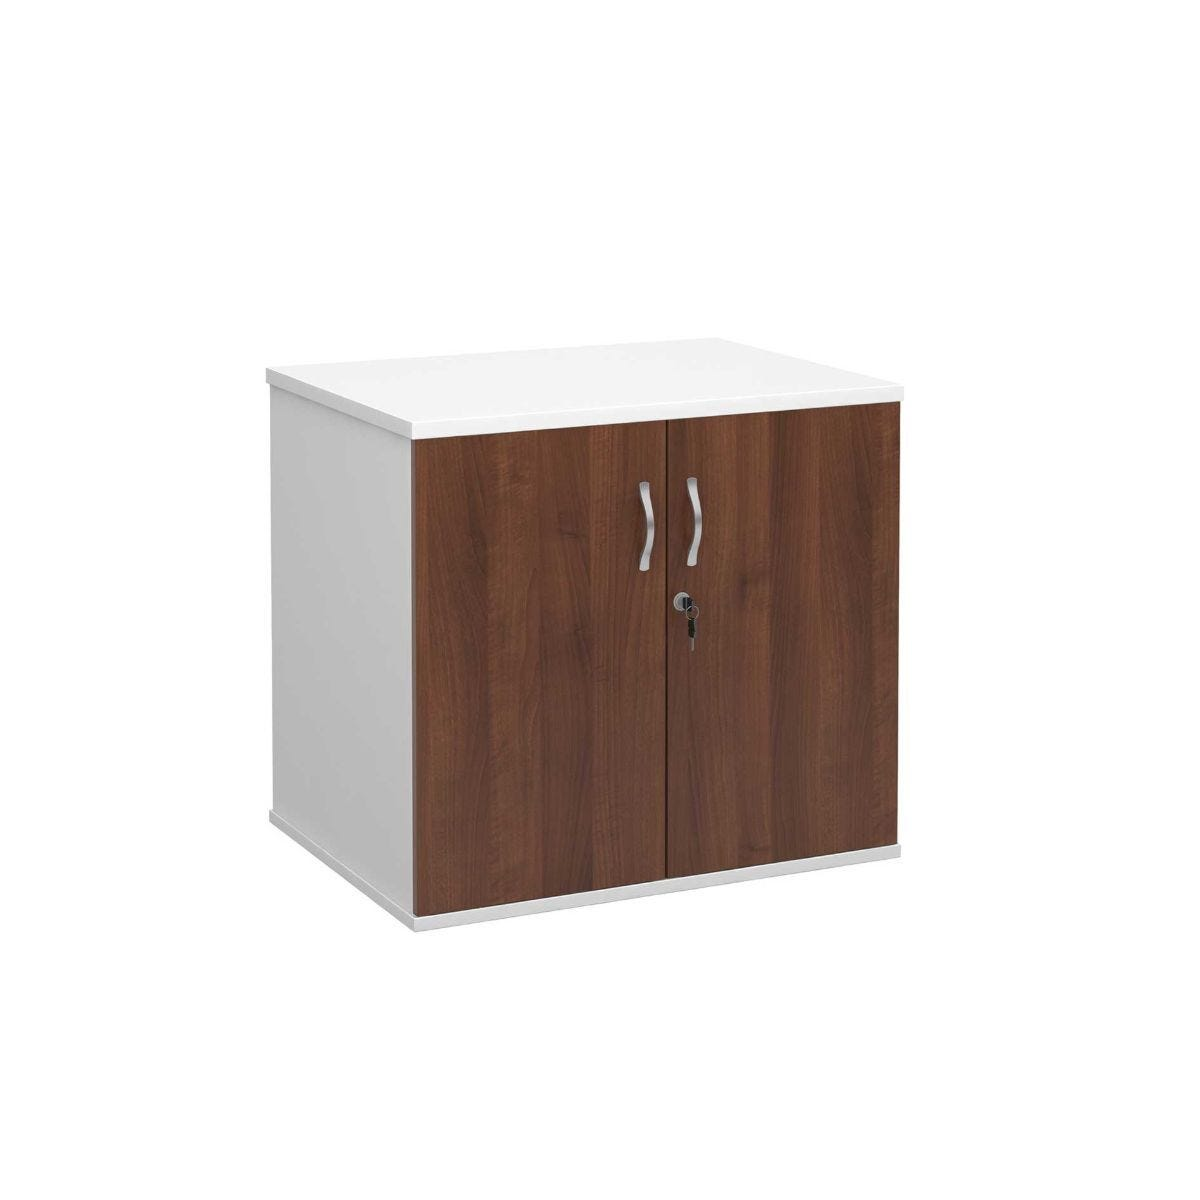 Desk High Cupboard with Doors Walnut and White